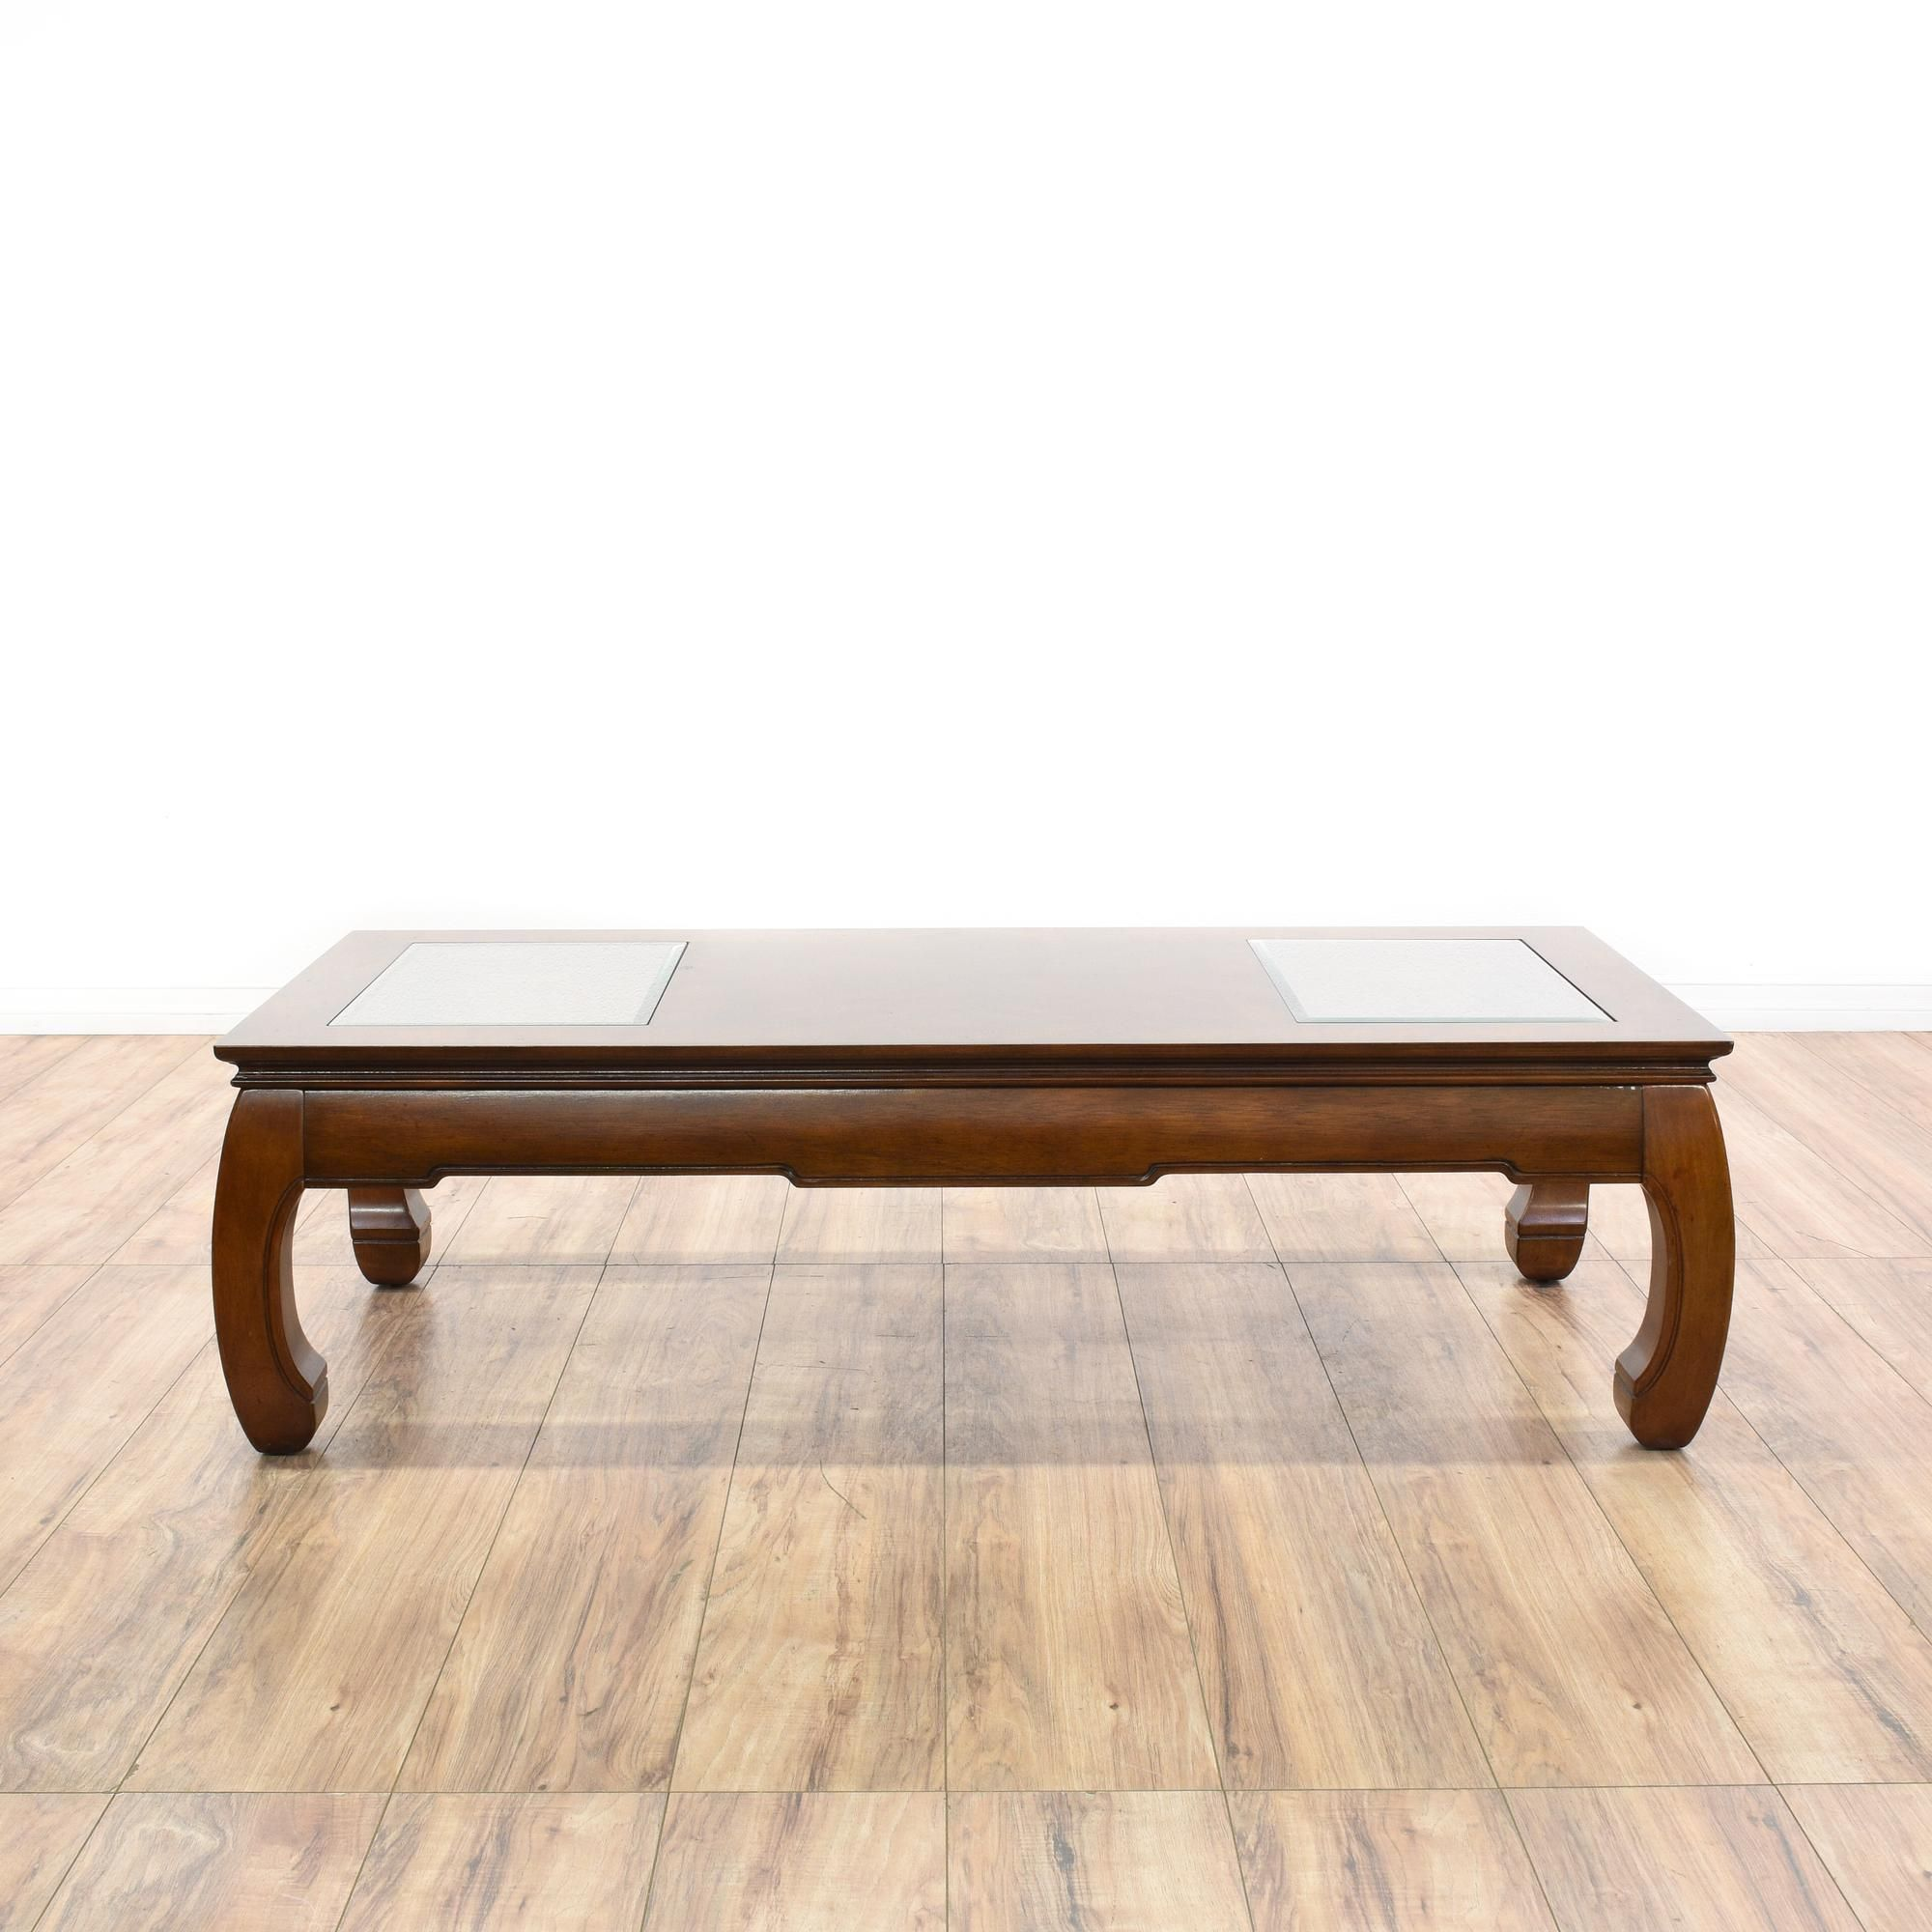 Furniture Legs San Diego asian chow leg coffee table | glass panels, solid wood and